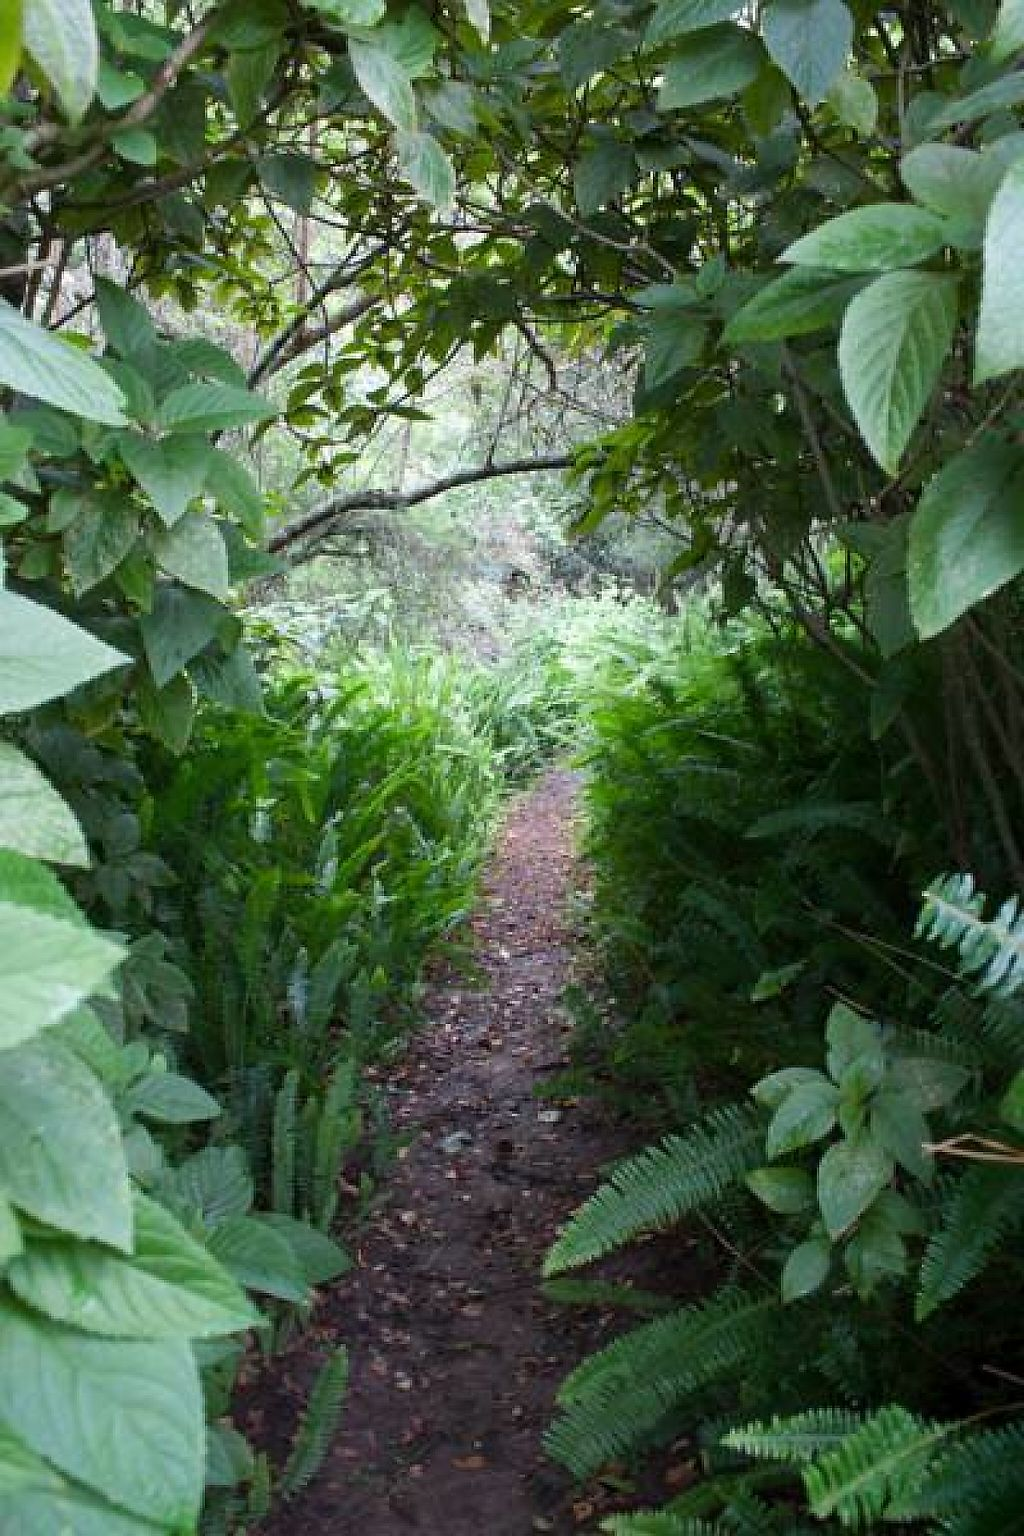 """Photo of Peace of Eden  by <a href=""""/members/profile/Jenatpeace"""">Jenatpeace</a> <br/>forest pathways <br/> May 28, 2017  - <a href='/contact/abuse/image/91626/263346'>Report</a>"""